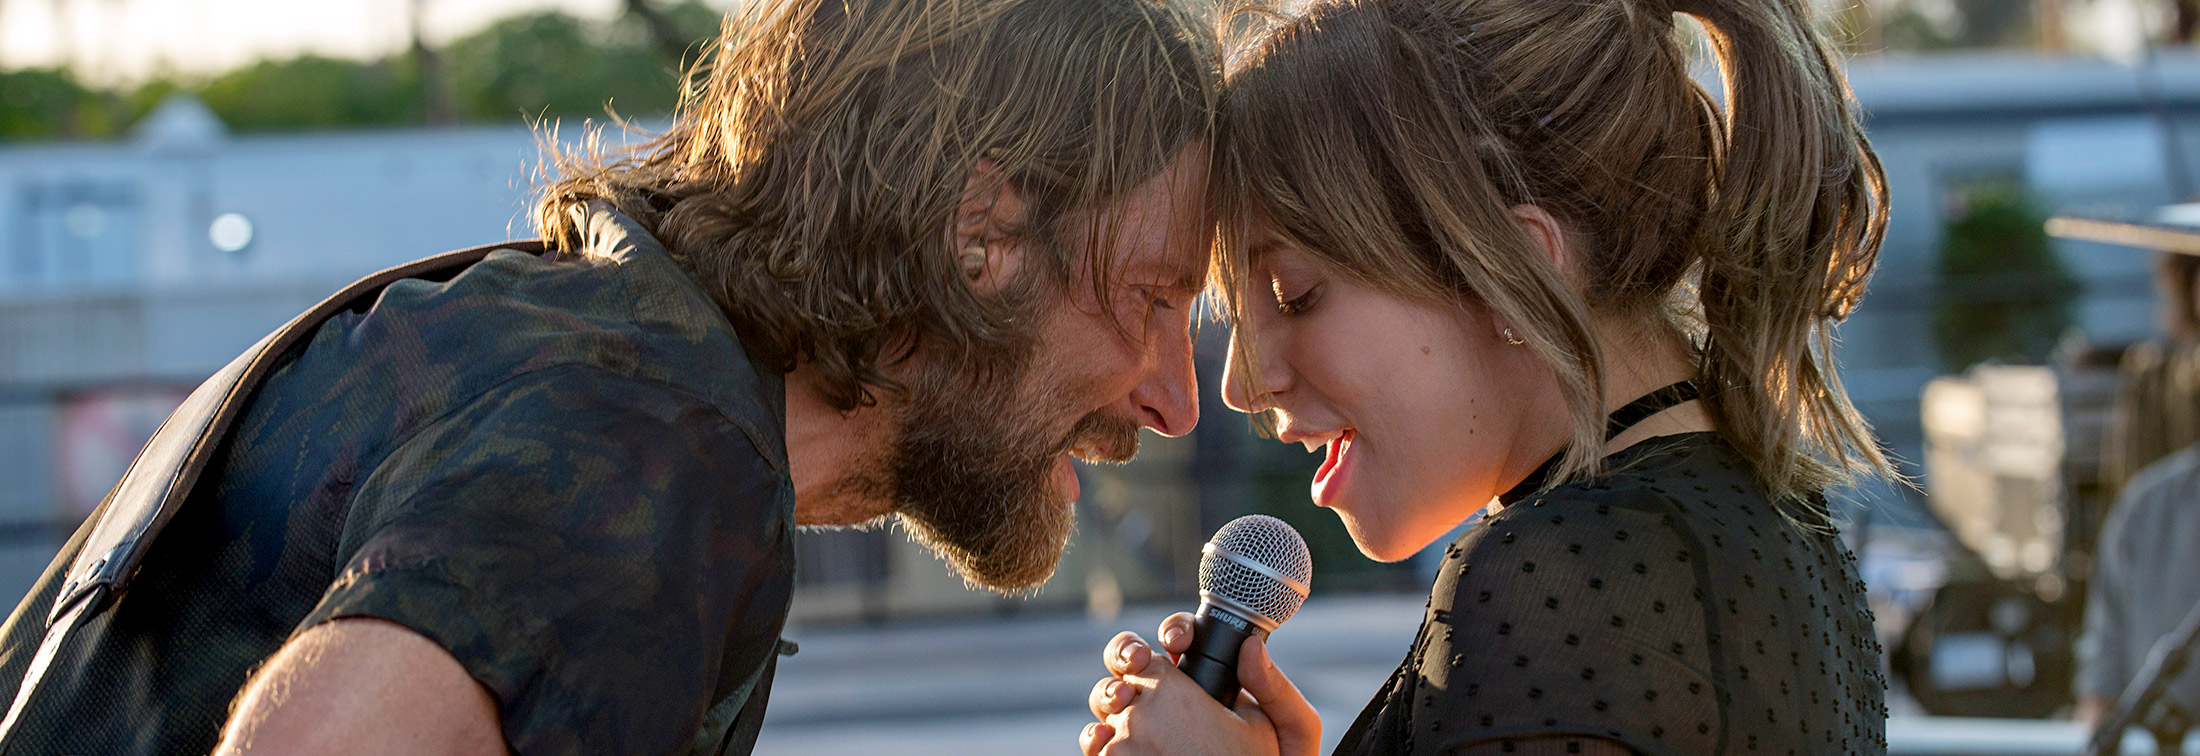 review, A Star Is Born, A, Star, Is, Born, film, movie, latest movies, new movie, movie ratings, current movie reviews, latest films, recent movies, current movies, movie critics, new movie reviews, latest movie reviews, latest movies out, the latest movies, review film, latest cinema releases, Australian reviews, cinema, cinema reviews, Bradley Cooper, Lady Gaga, Andrew Dice Clay, Sam Elliott, Dave Chappelle, Rebecca Field, Michael Harney, Rafi Gavron, Willam Belli, Barry Shabaka Henley, Bradley Cooper, Drama, Musical